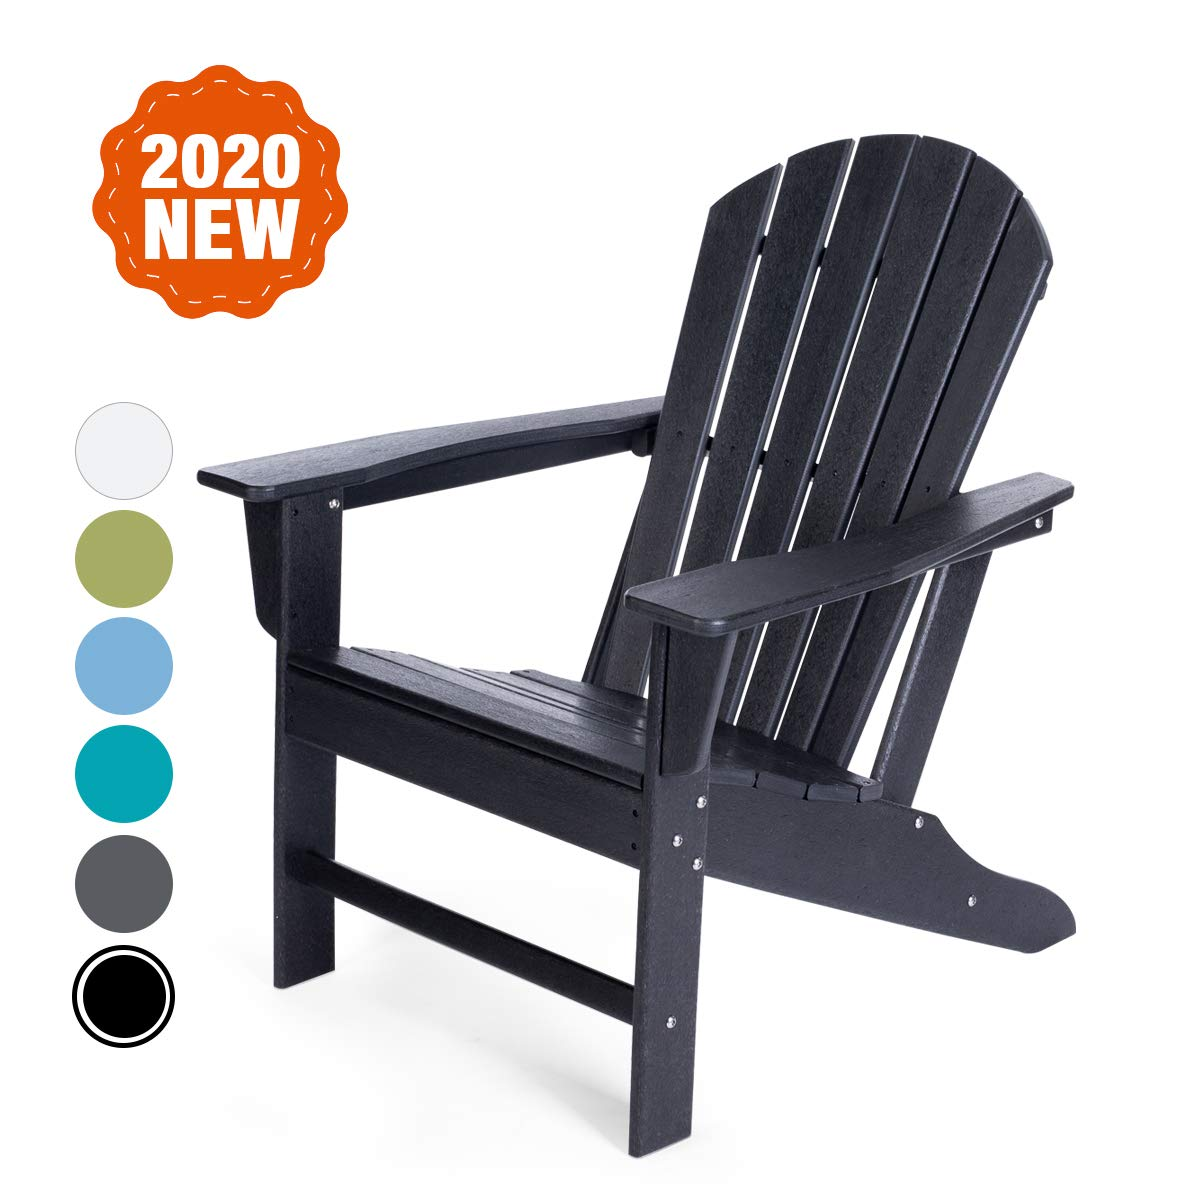 The Best adirondack chair - Our pick